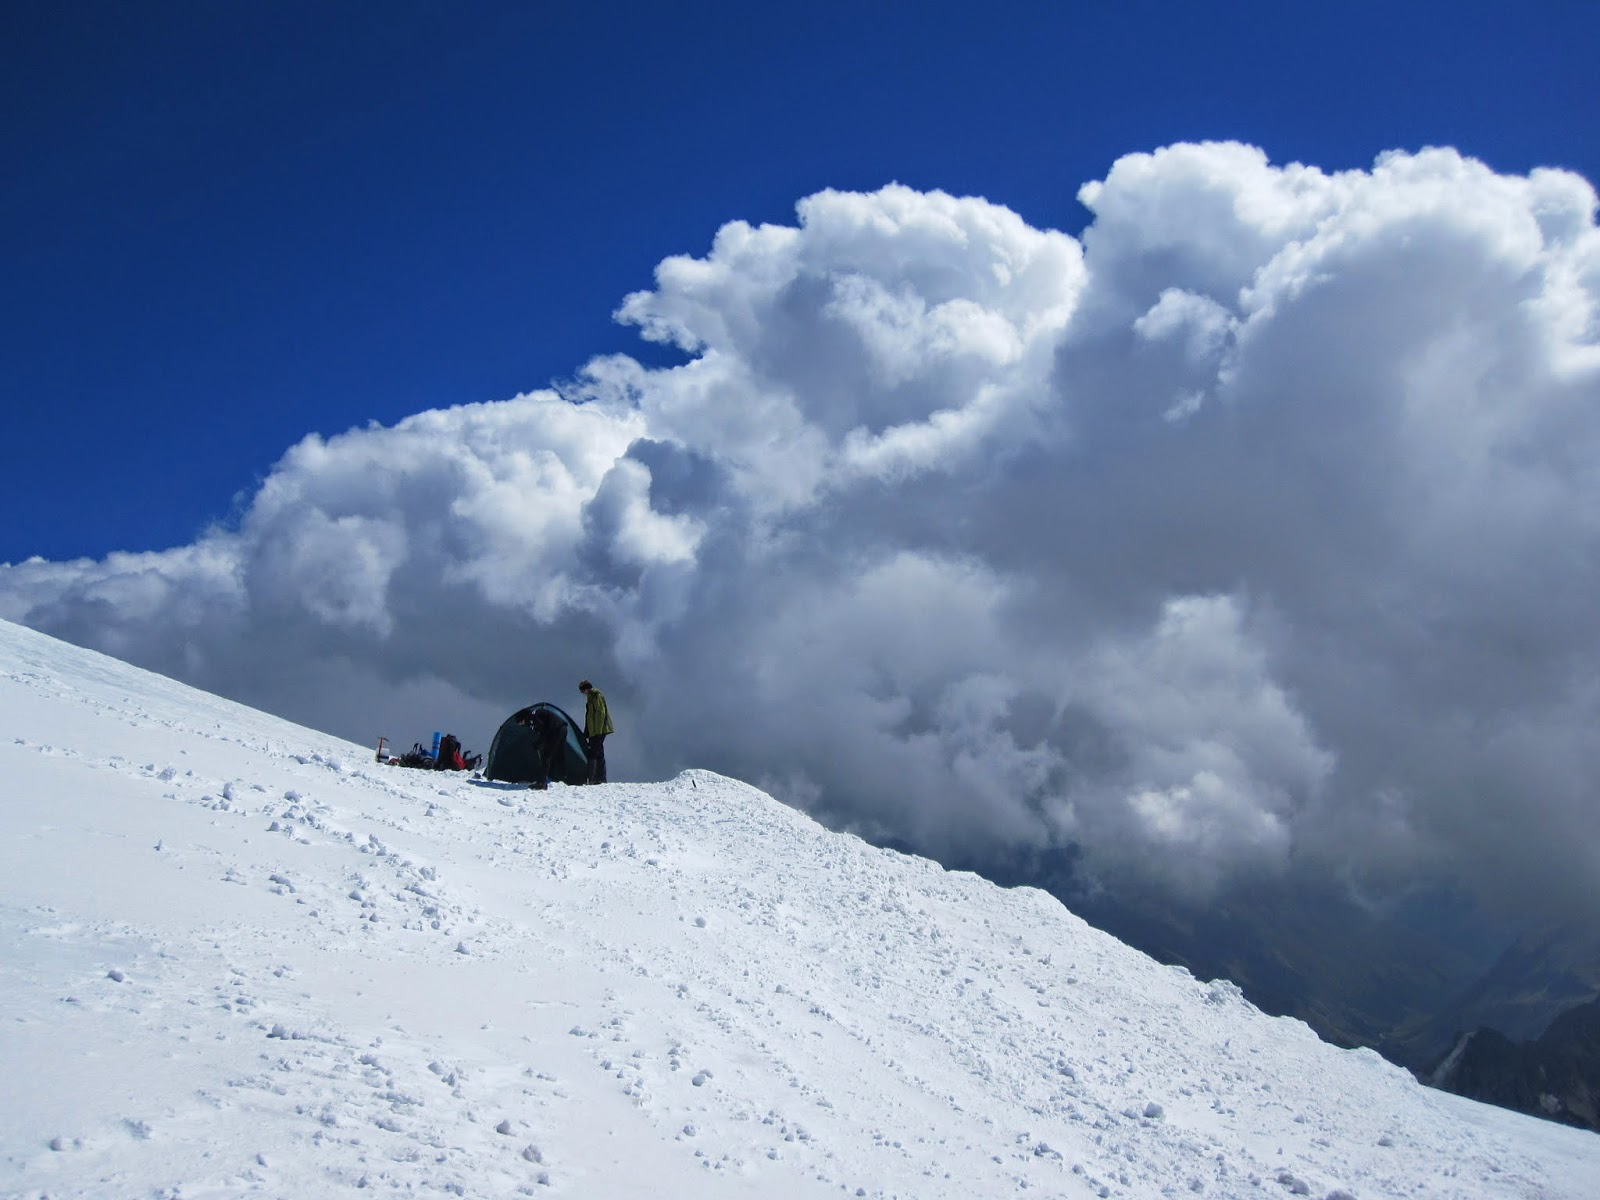 Camping above the clouds on Mount Elbrus